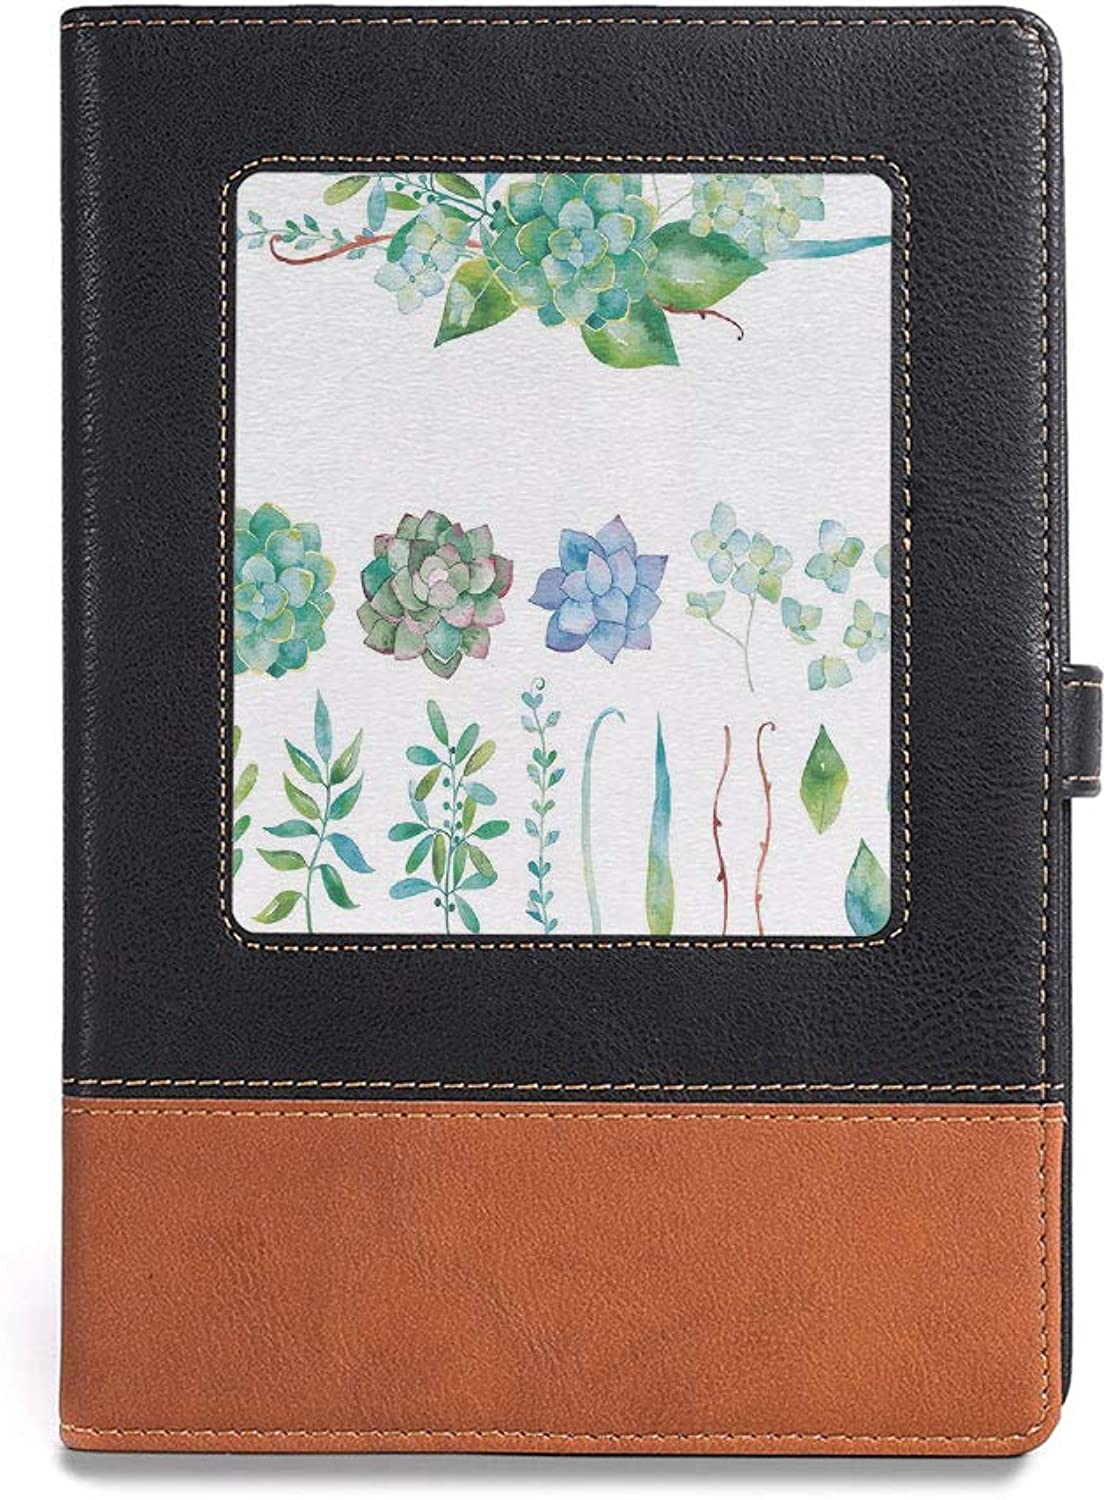 Travel Journal Diary Notebook,Succulent,A5(6.1  x 8.6 ),for Travelers,colorful Floral Collection Leaves and Flowers Watercolor Botany,